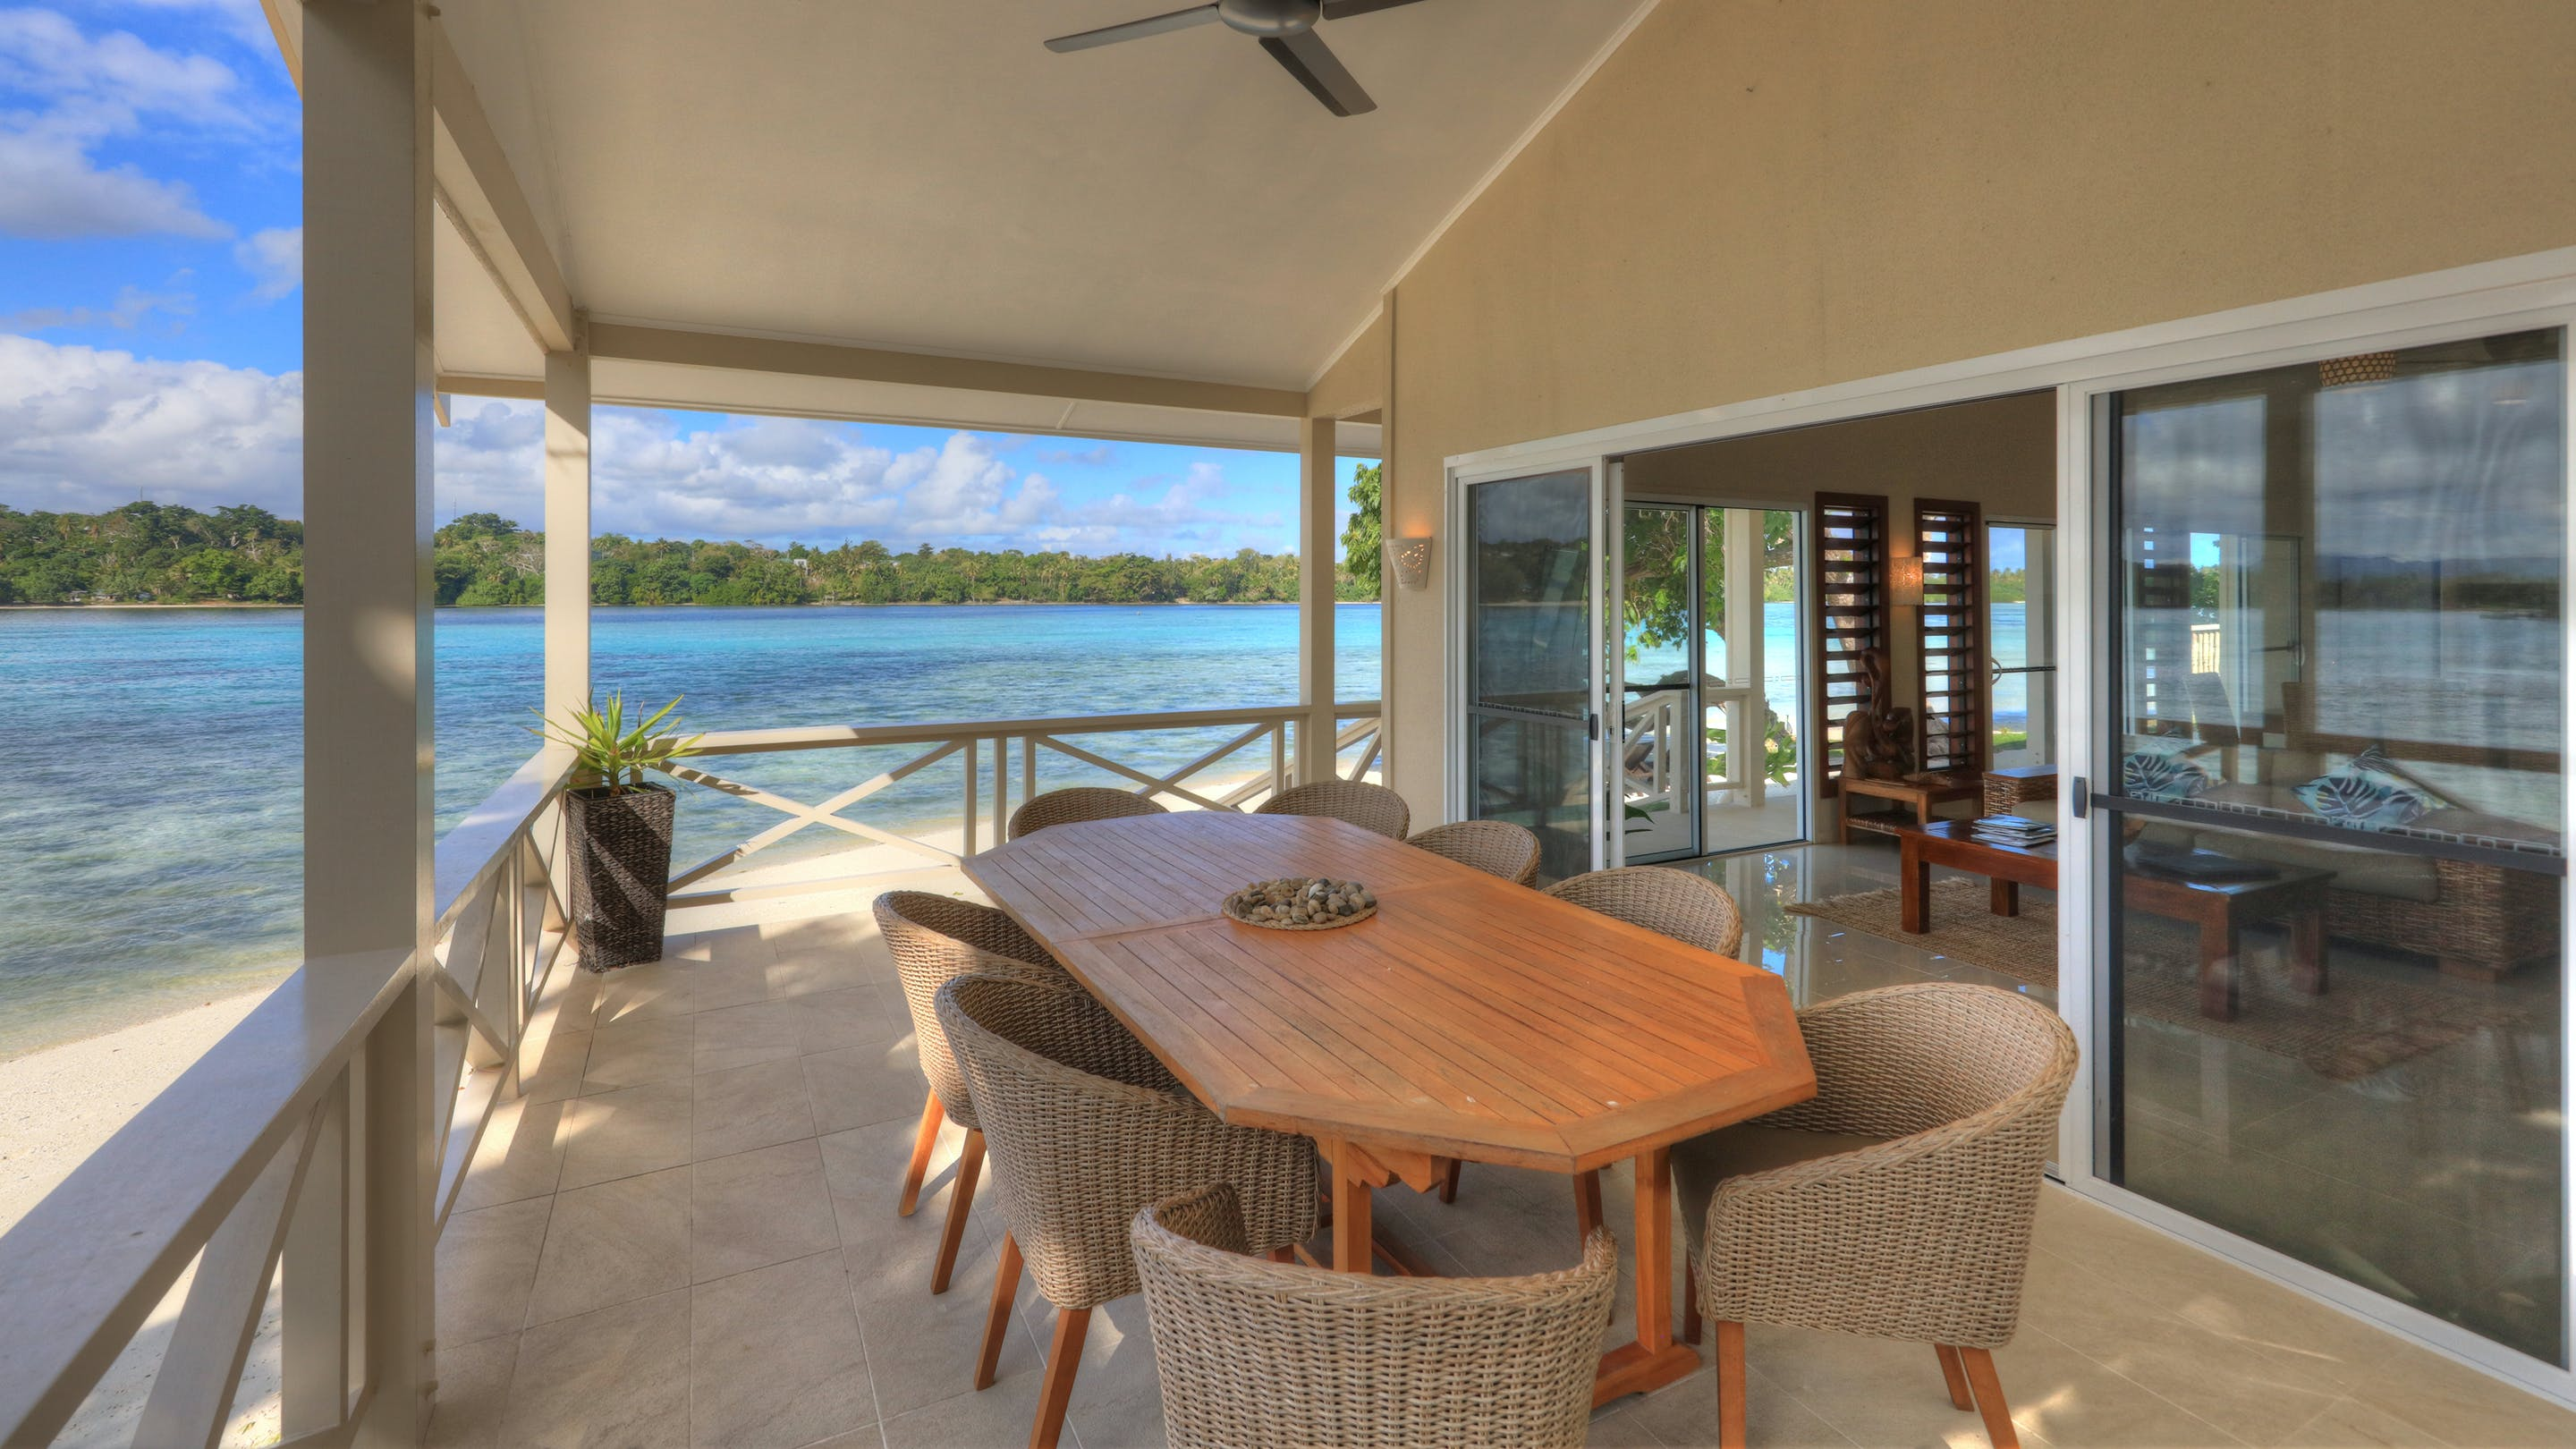 erakor island resort beach cottage #erakorislandresort #tropicalislandholiday erakor island resort beach cottage deck